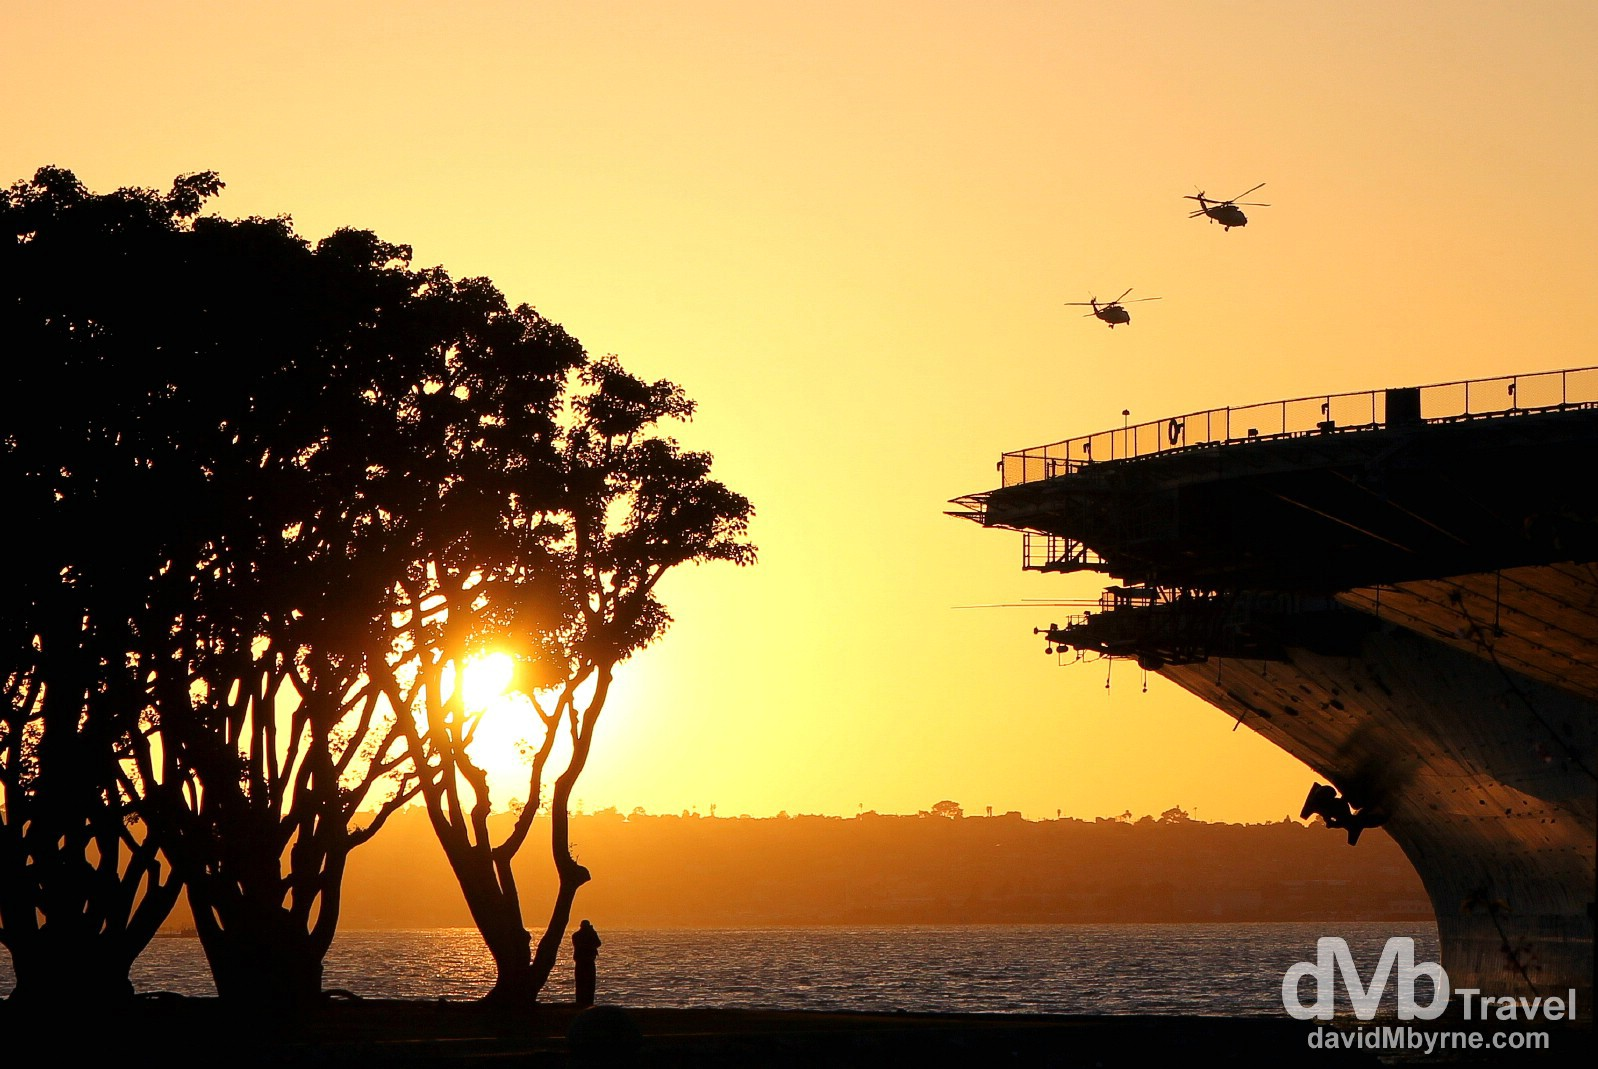 A section of USS Midway at sunset on Harbor Drive in San Diego, California, USA. April 16th 2013.